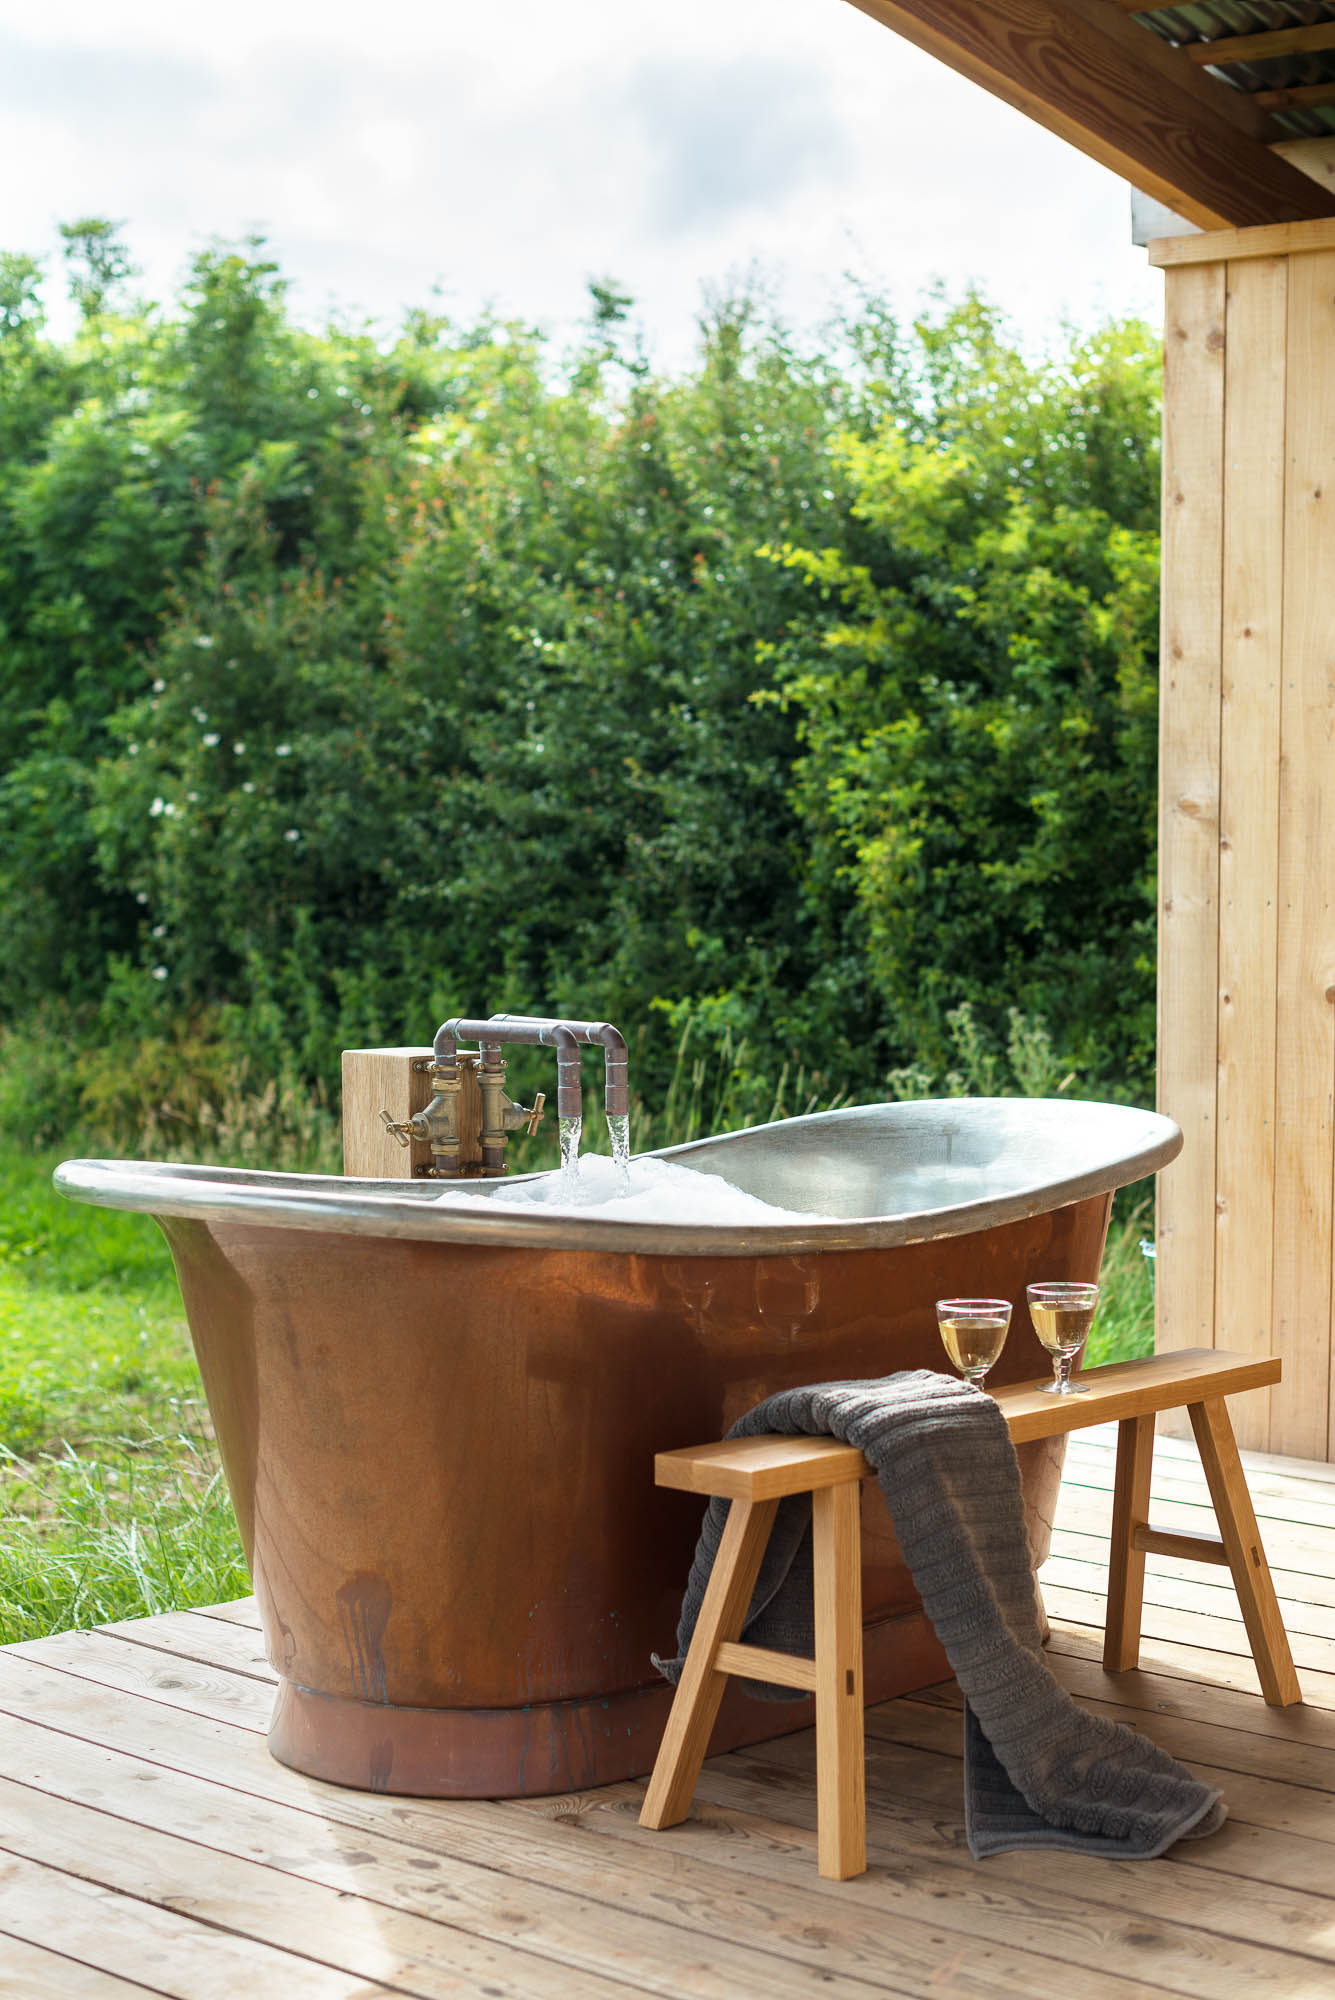 off-grid bespoke cedar cabin with covered veranda, outdoor copper bath with oak stool and champagne in the natural landscape